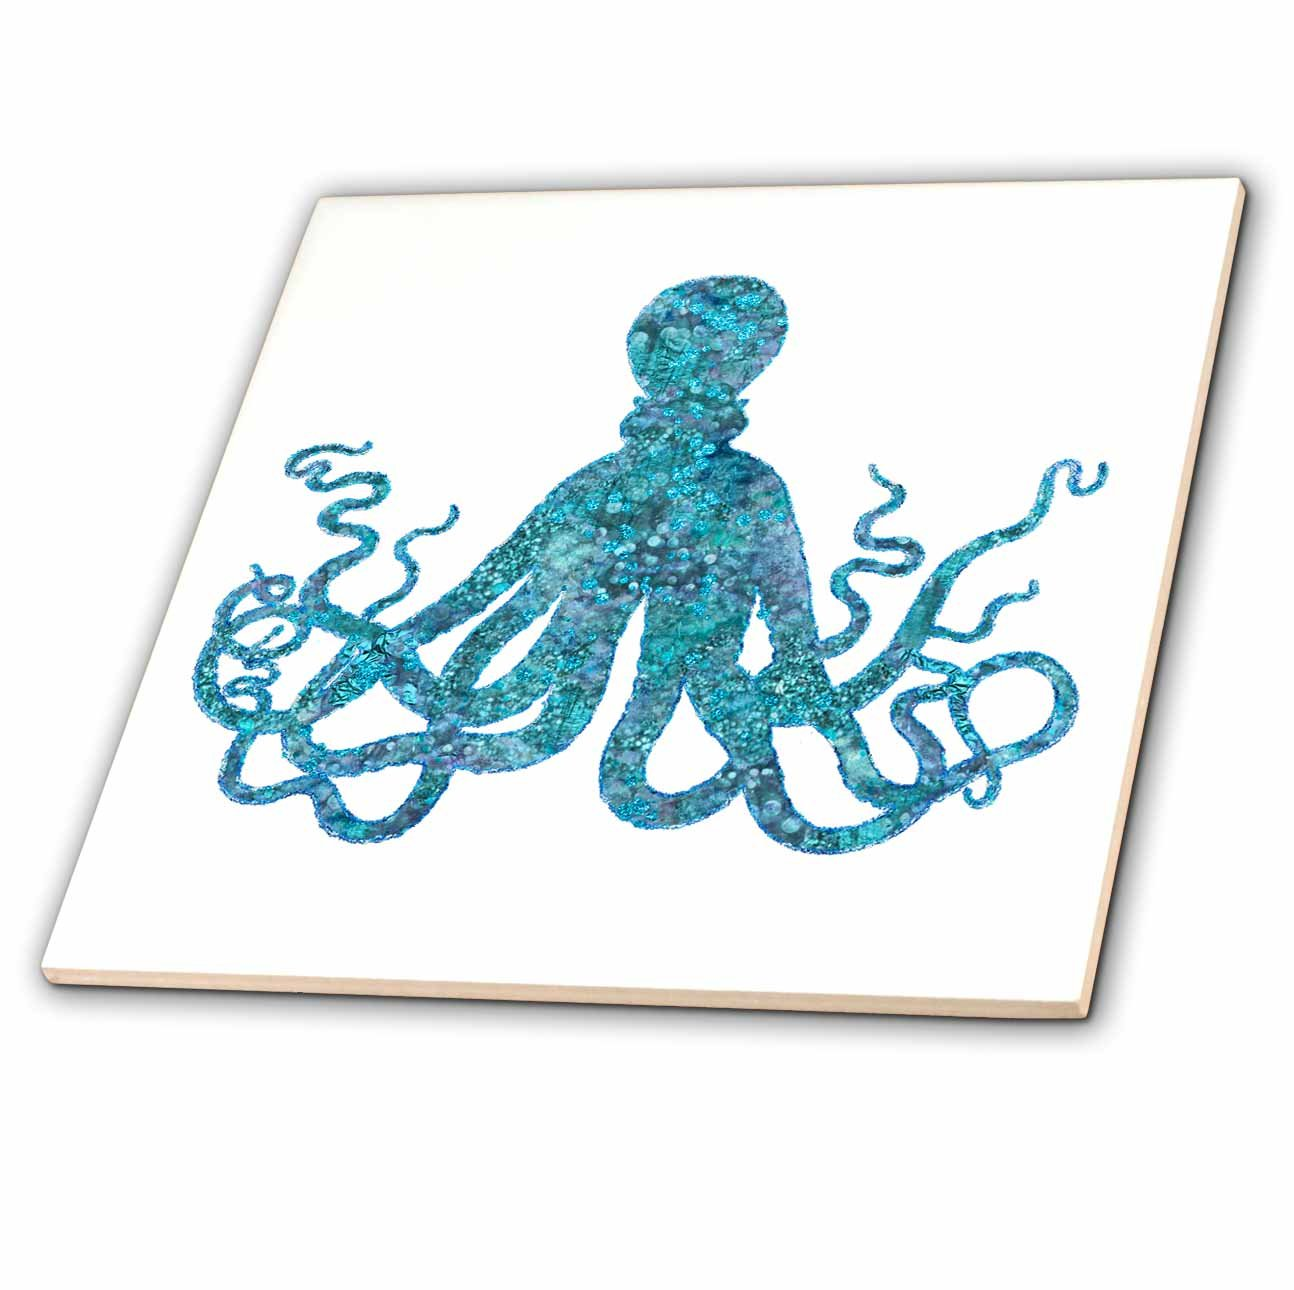 3dRose Andrea Haase Animals Illustration - Turquoise Blue Glamorous Octopus Art - 6 Inch Ceramic Tile (ct_282455_2)